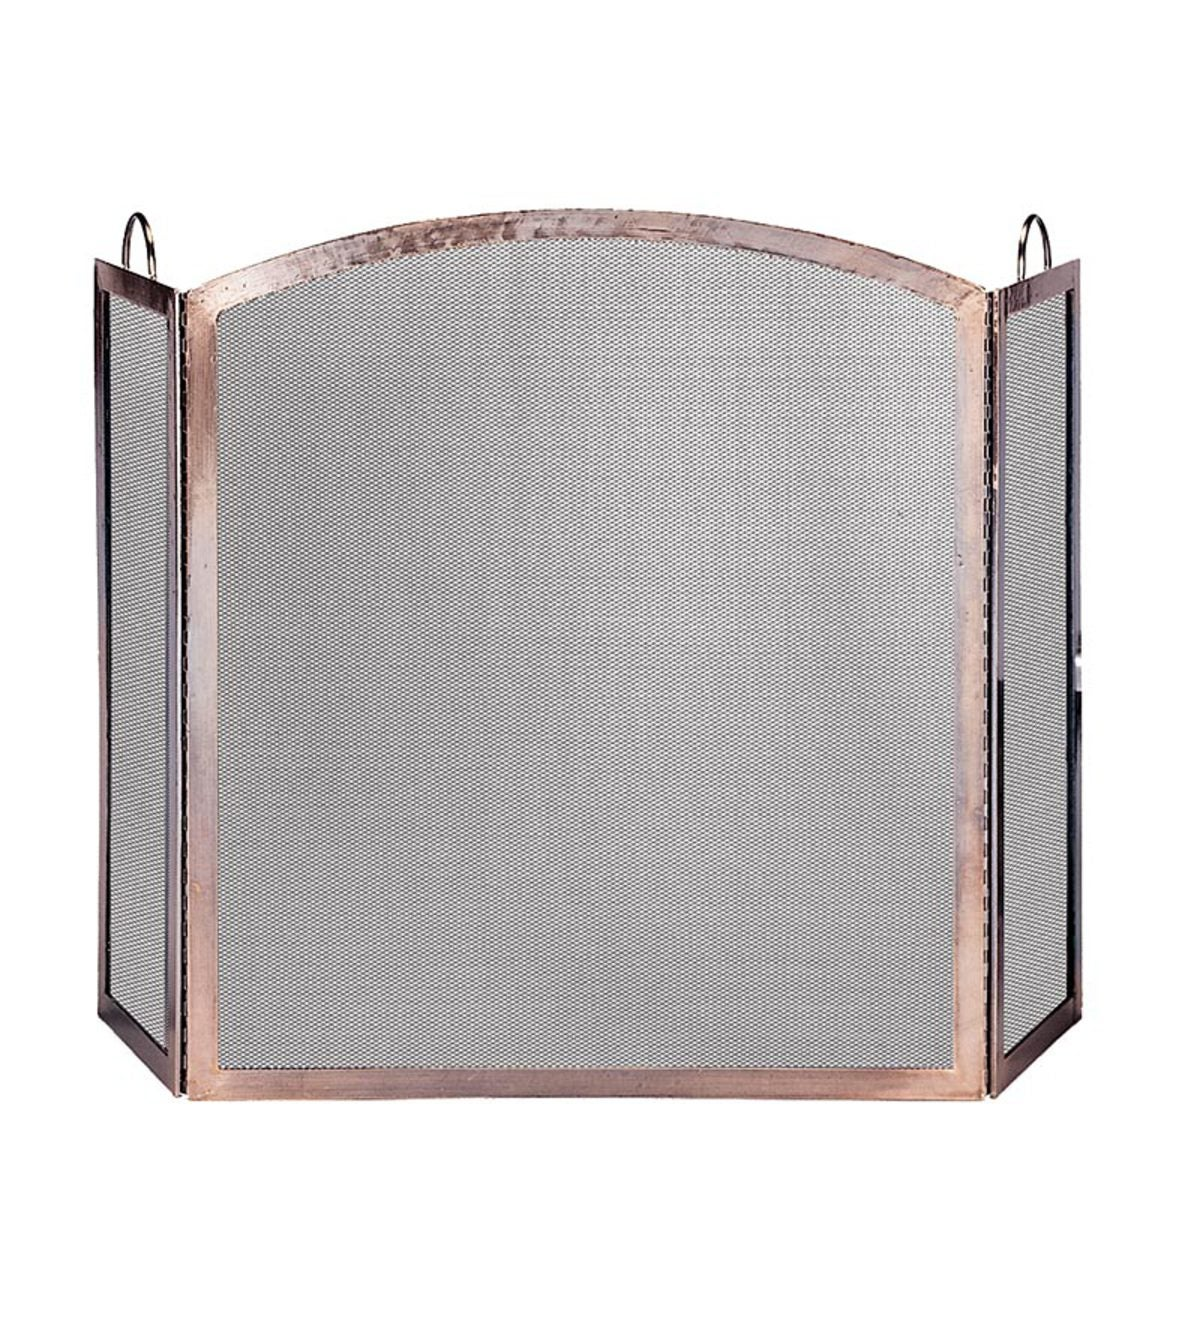 Antique Copper Tri-Folding Fireplace Screen With Arch